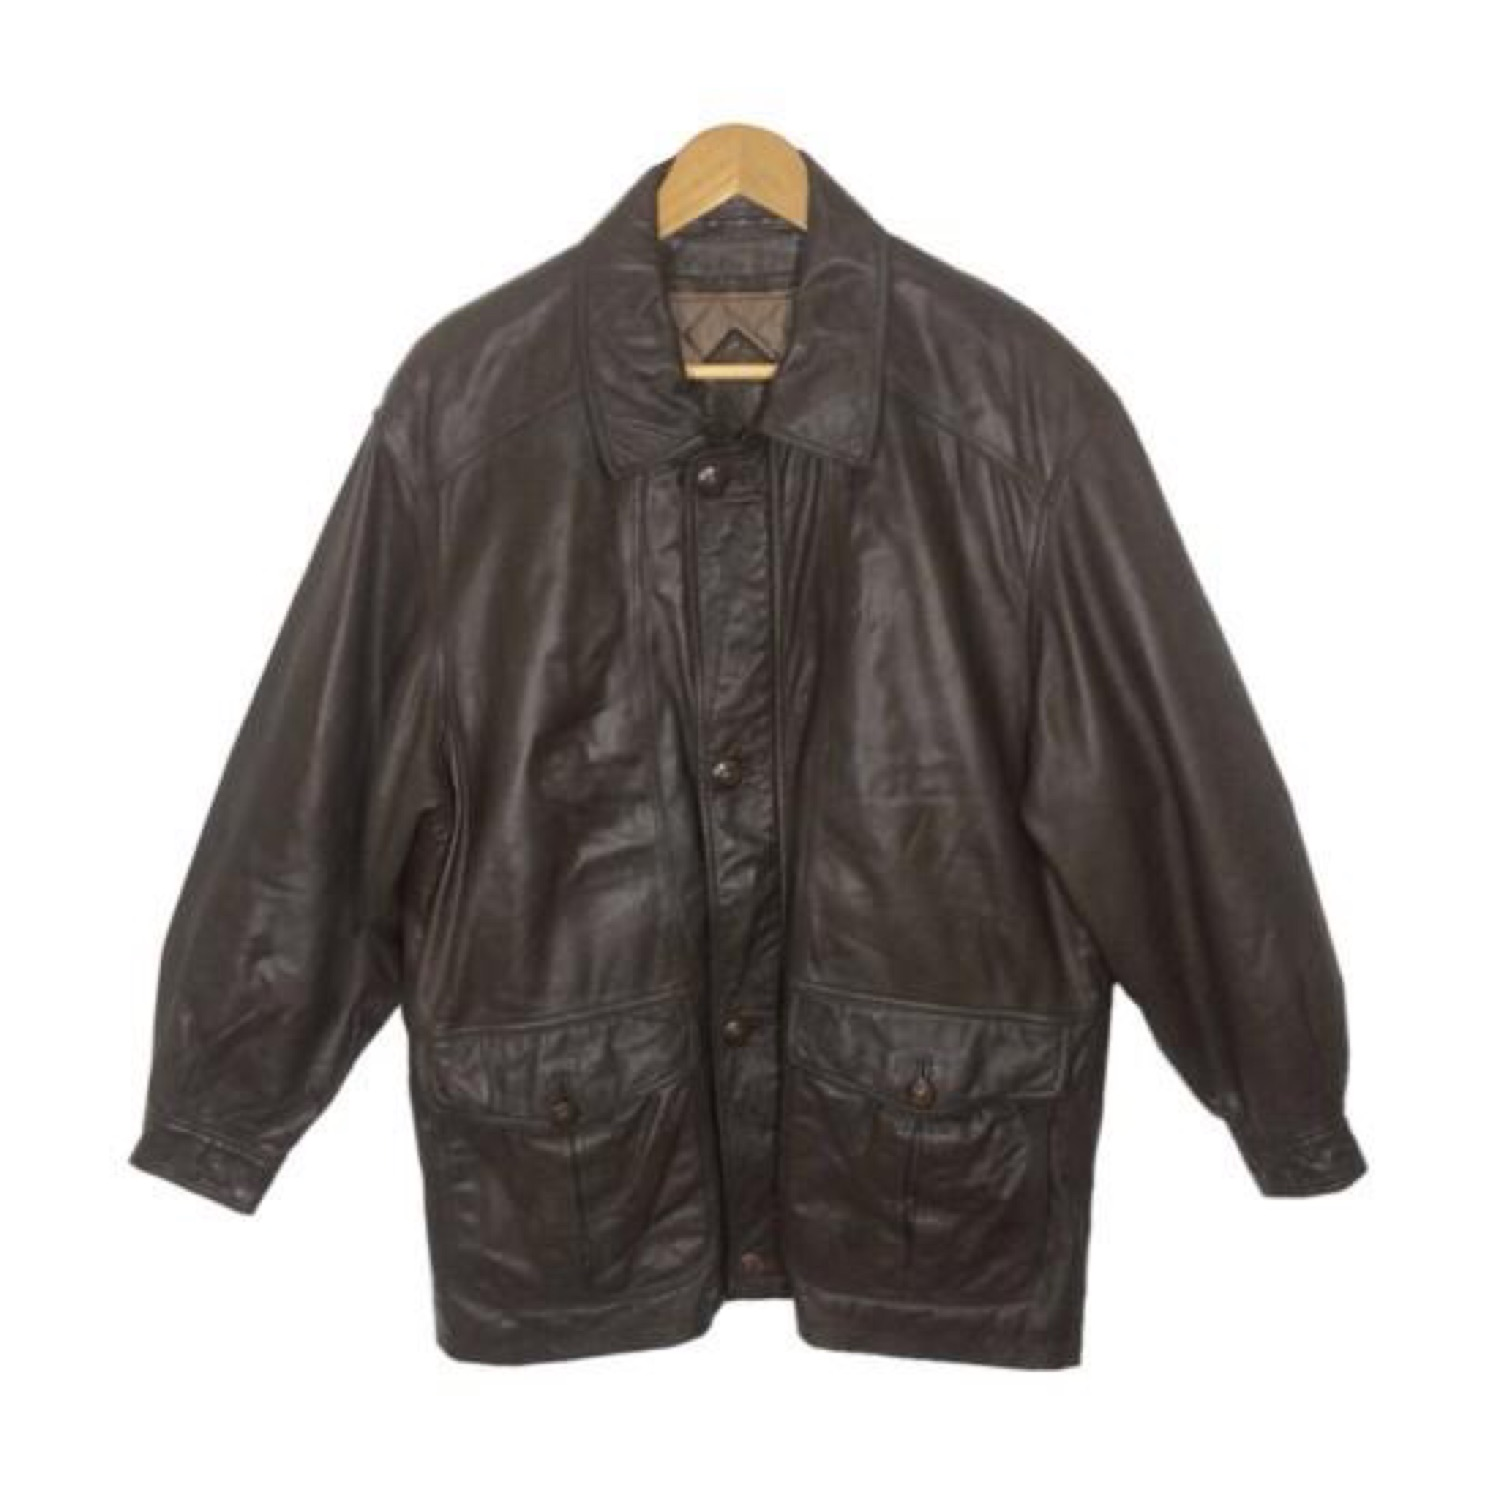 Yves Saint Laurent Brown Leather Jacket